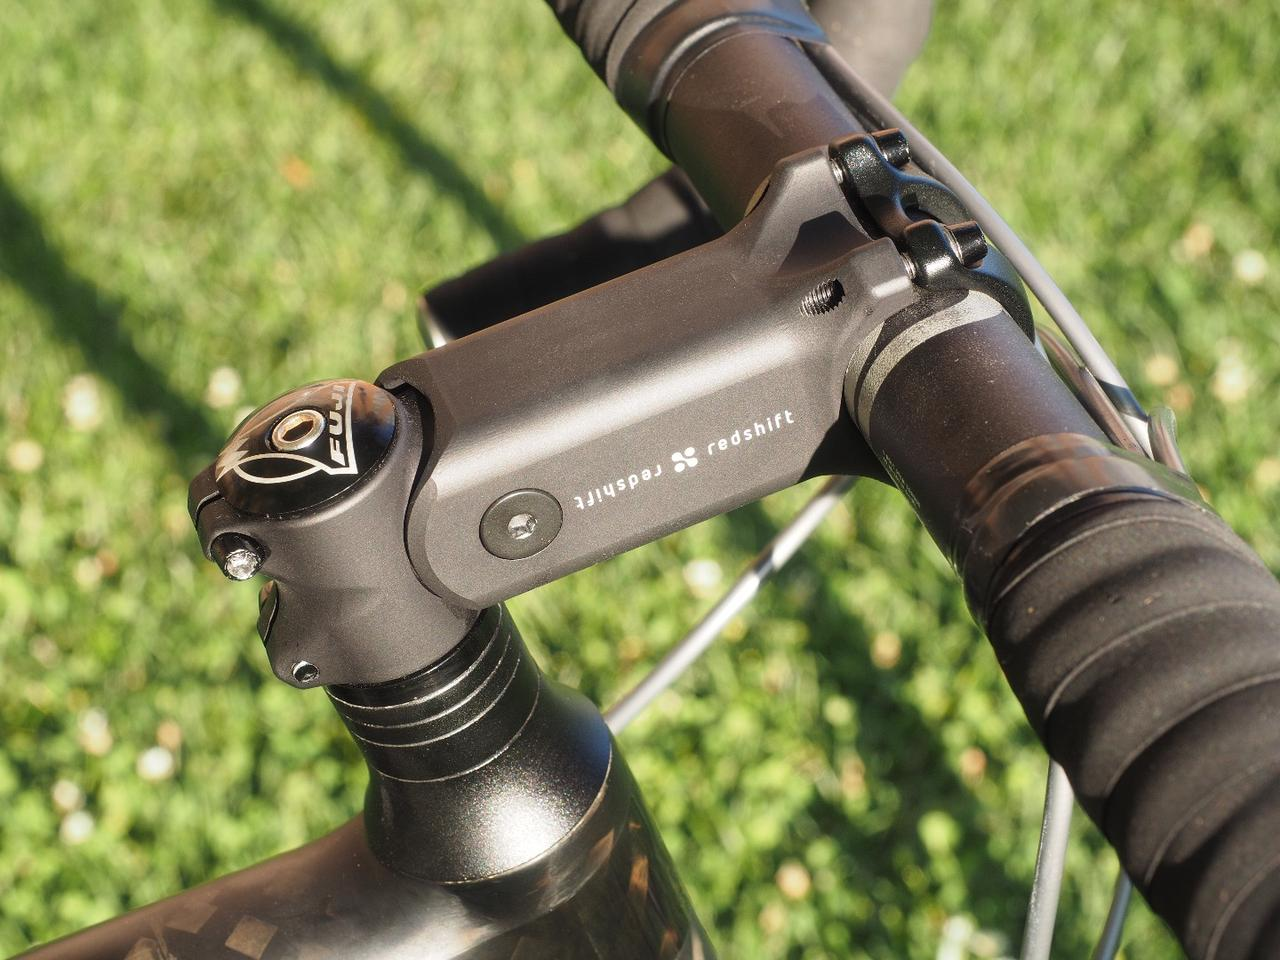 The ShockStop handlebar stem pivots to soak up road vibrations